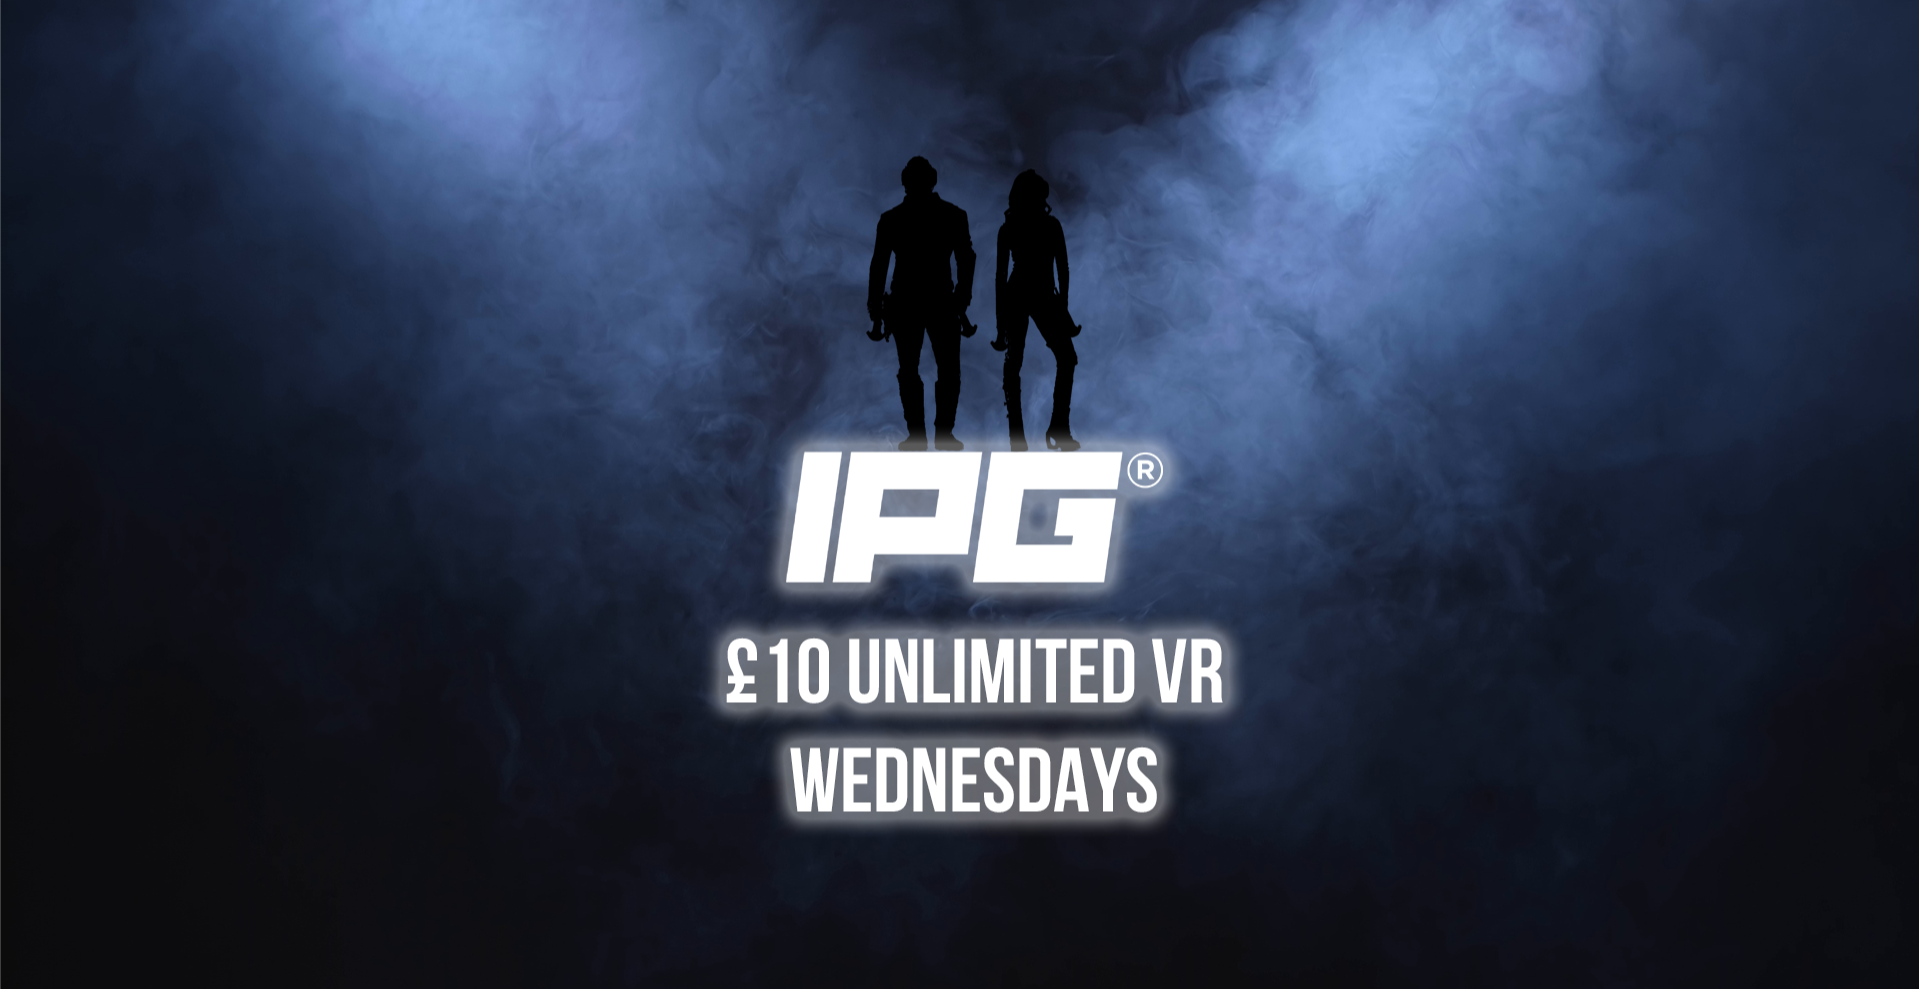 IPG £10 UNLIMITED VR WEDNESDAYS